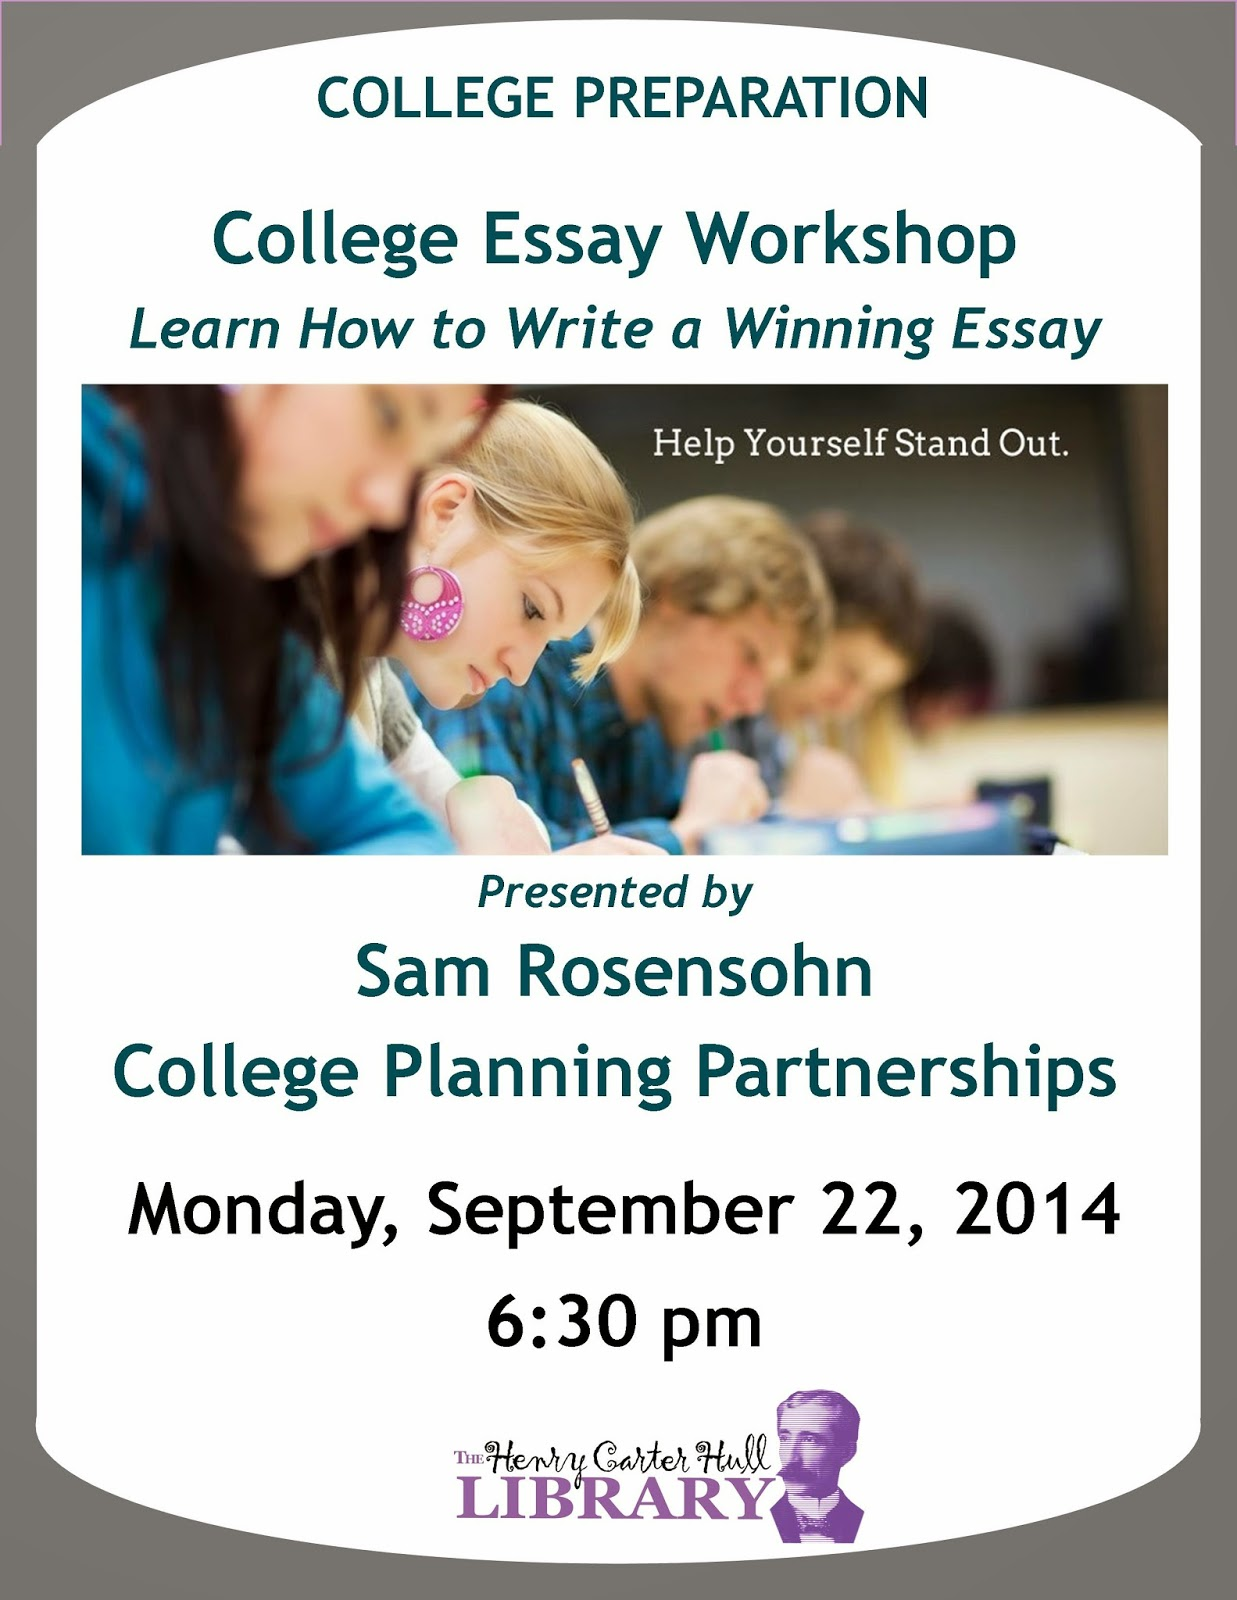 hch library news clinton ct learn how to write a winning college essay sam rosensohn of college planning partnerships